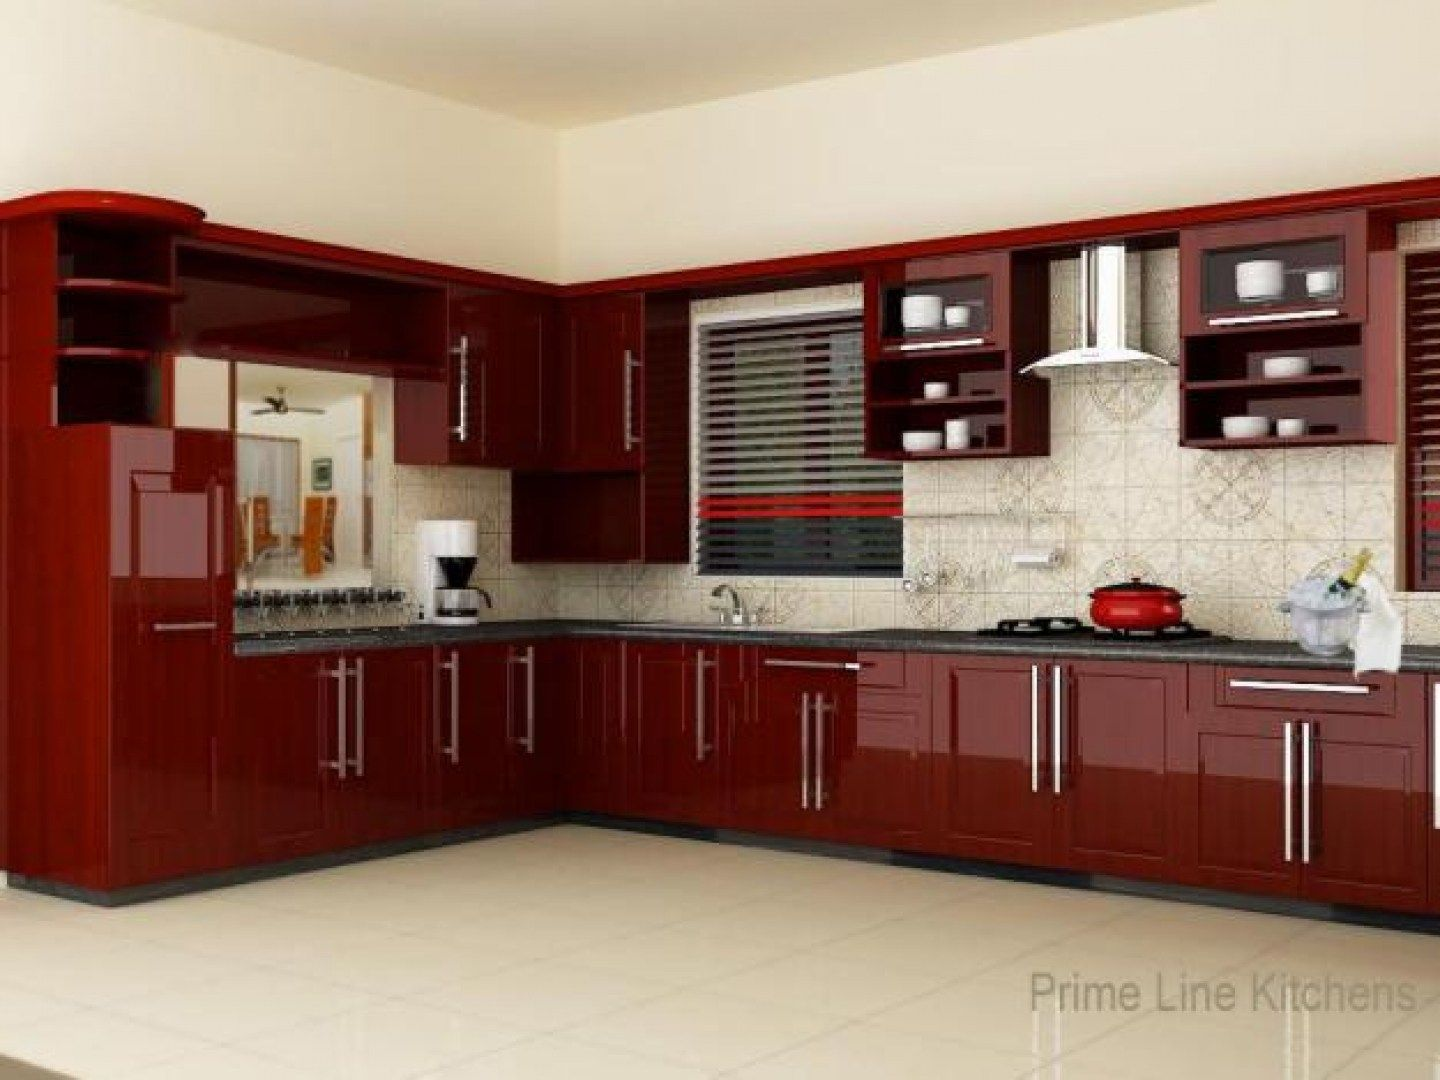 Kitchen design ideas kitchen woodwork designs hyderabad for Kitchen cabinets models